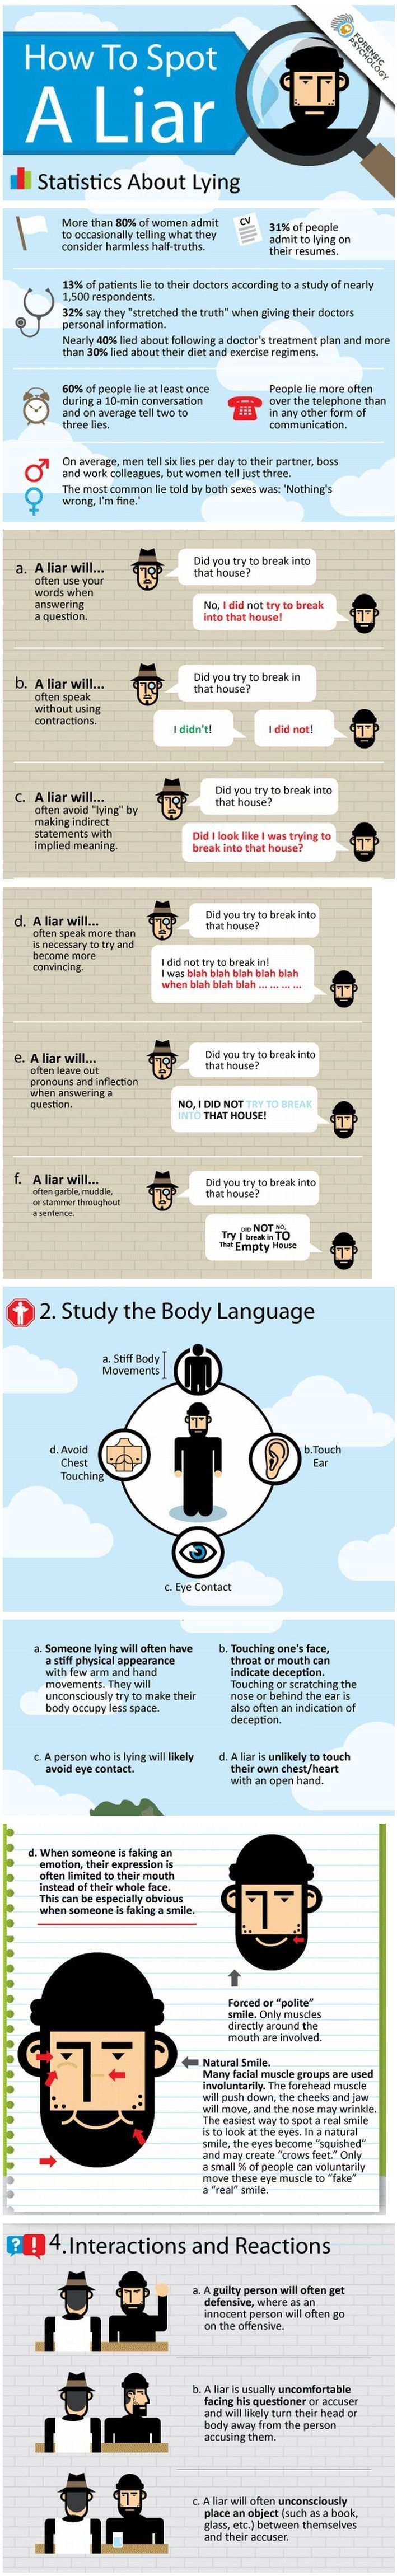 How to spot a liar! I just lost some faith in humanity but this is good stuff to know I suppose.